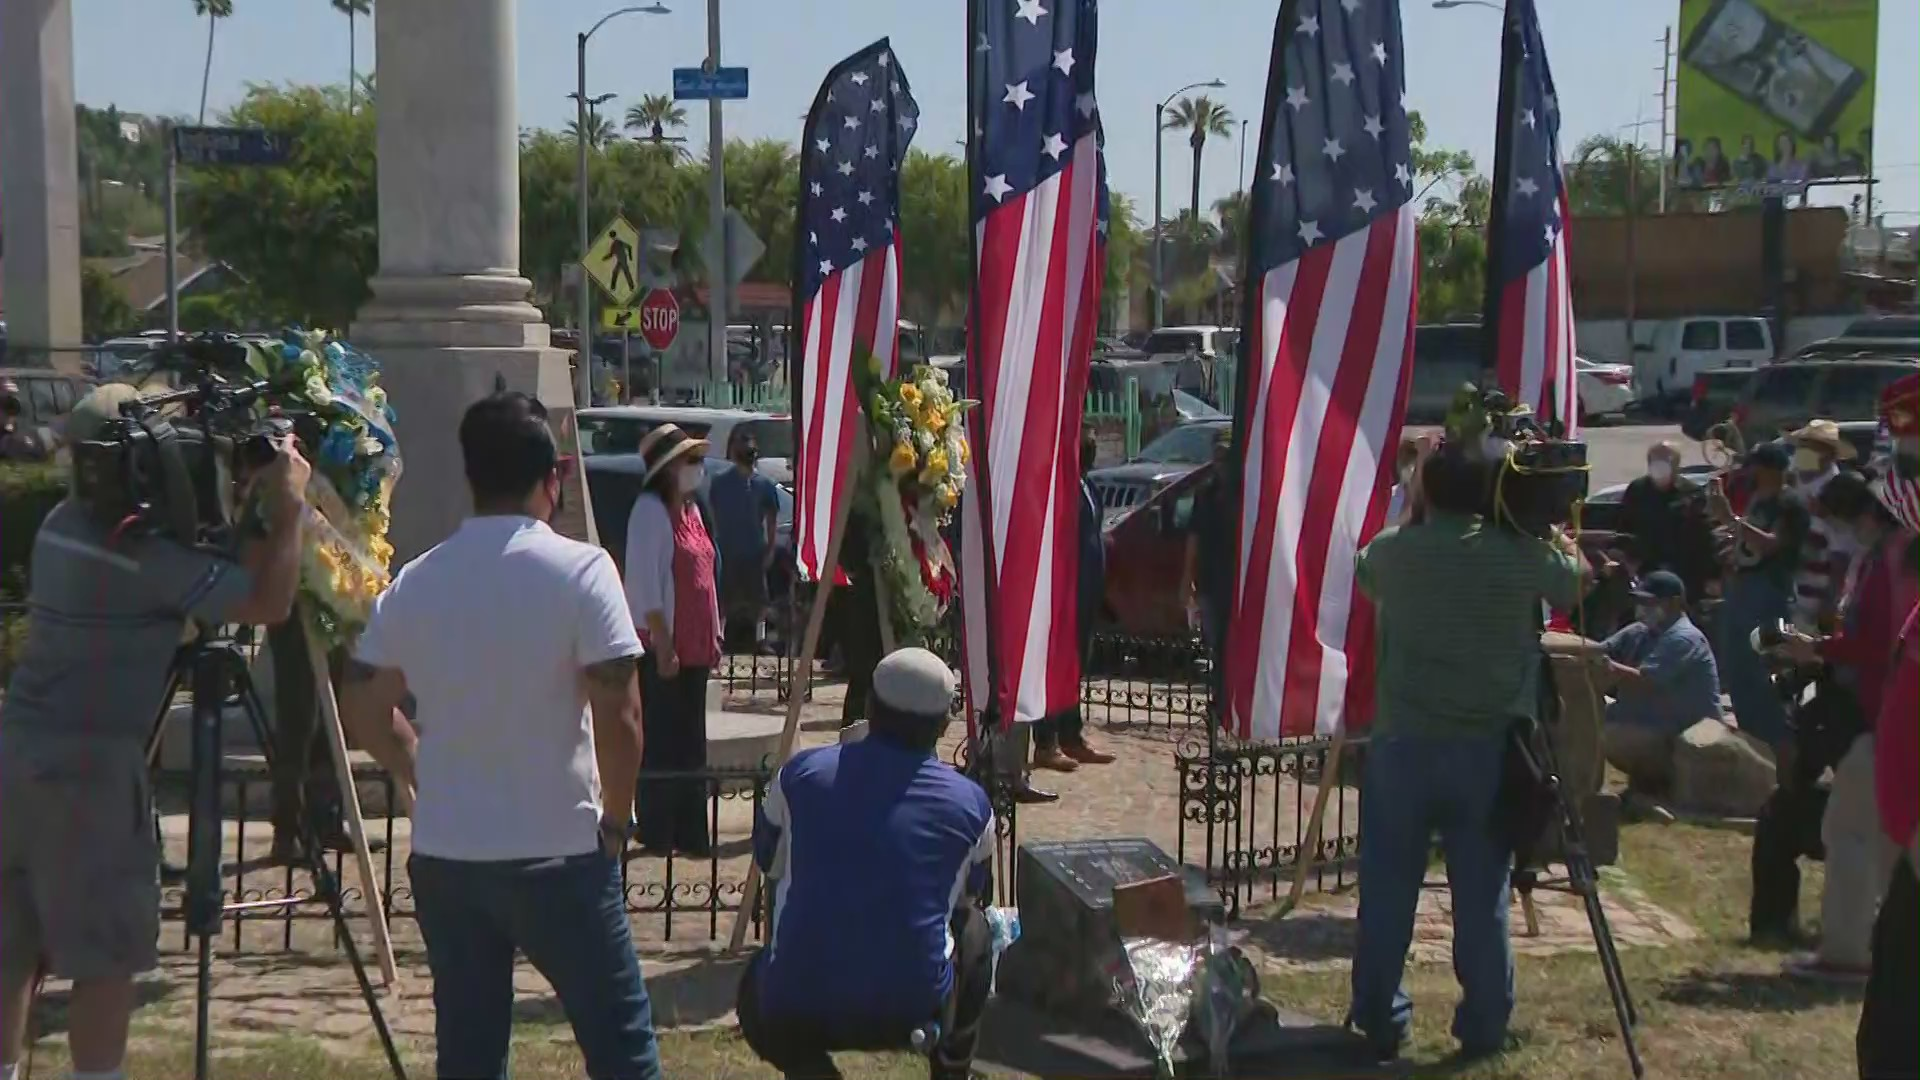 A ceremony is held at the Mexican-American All Wars Memorial in Boyle Heights on May 25, 2020. (KTLA)